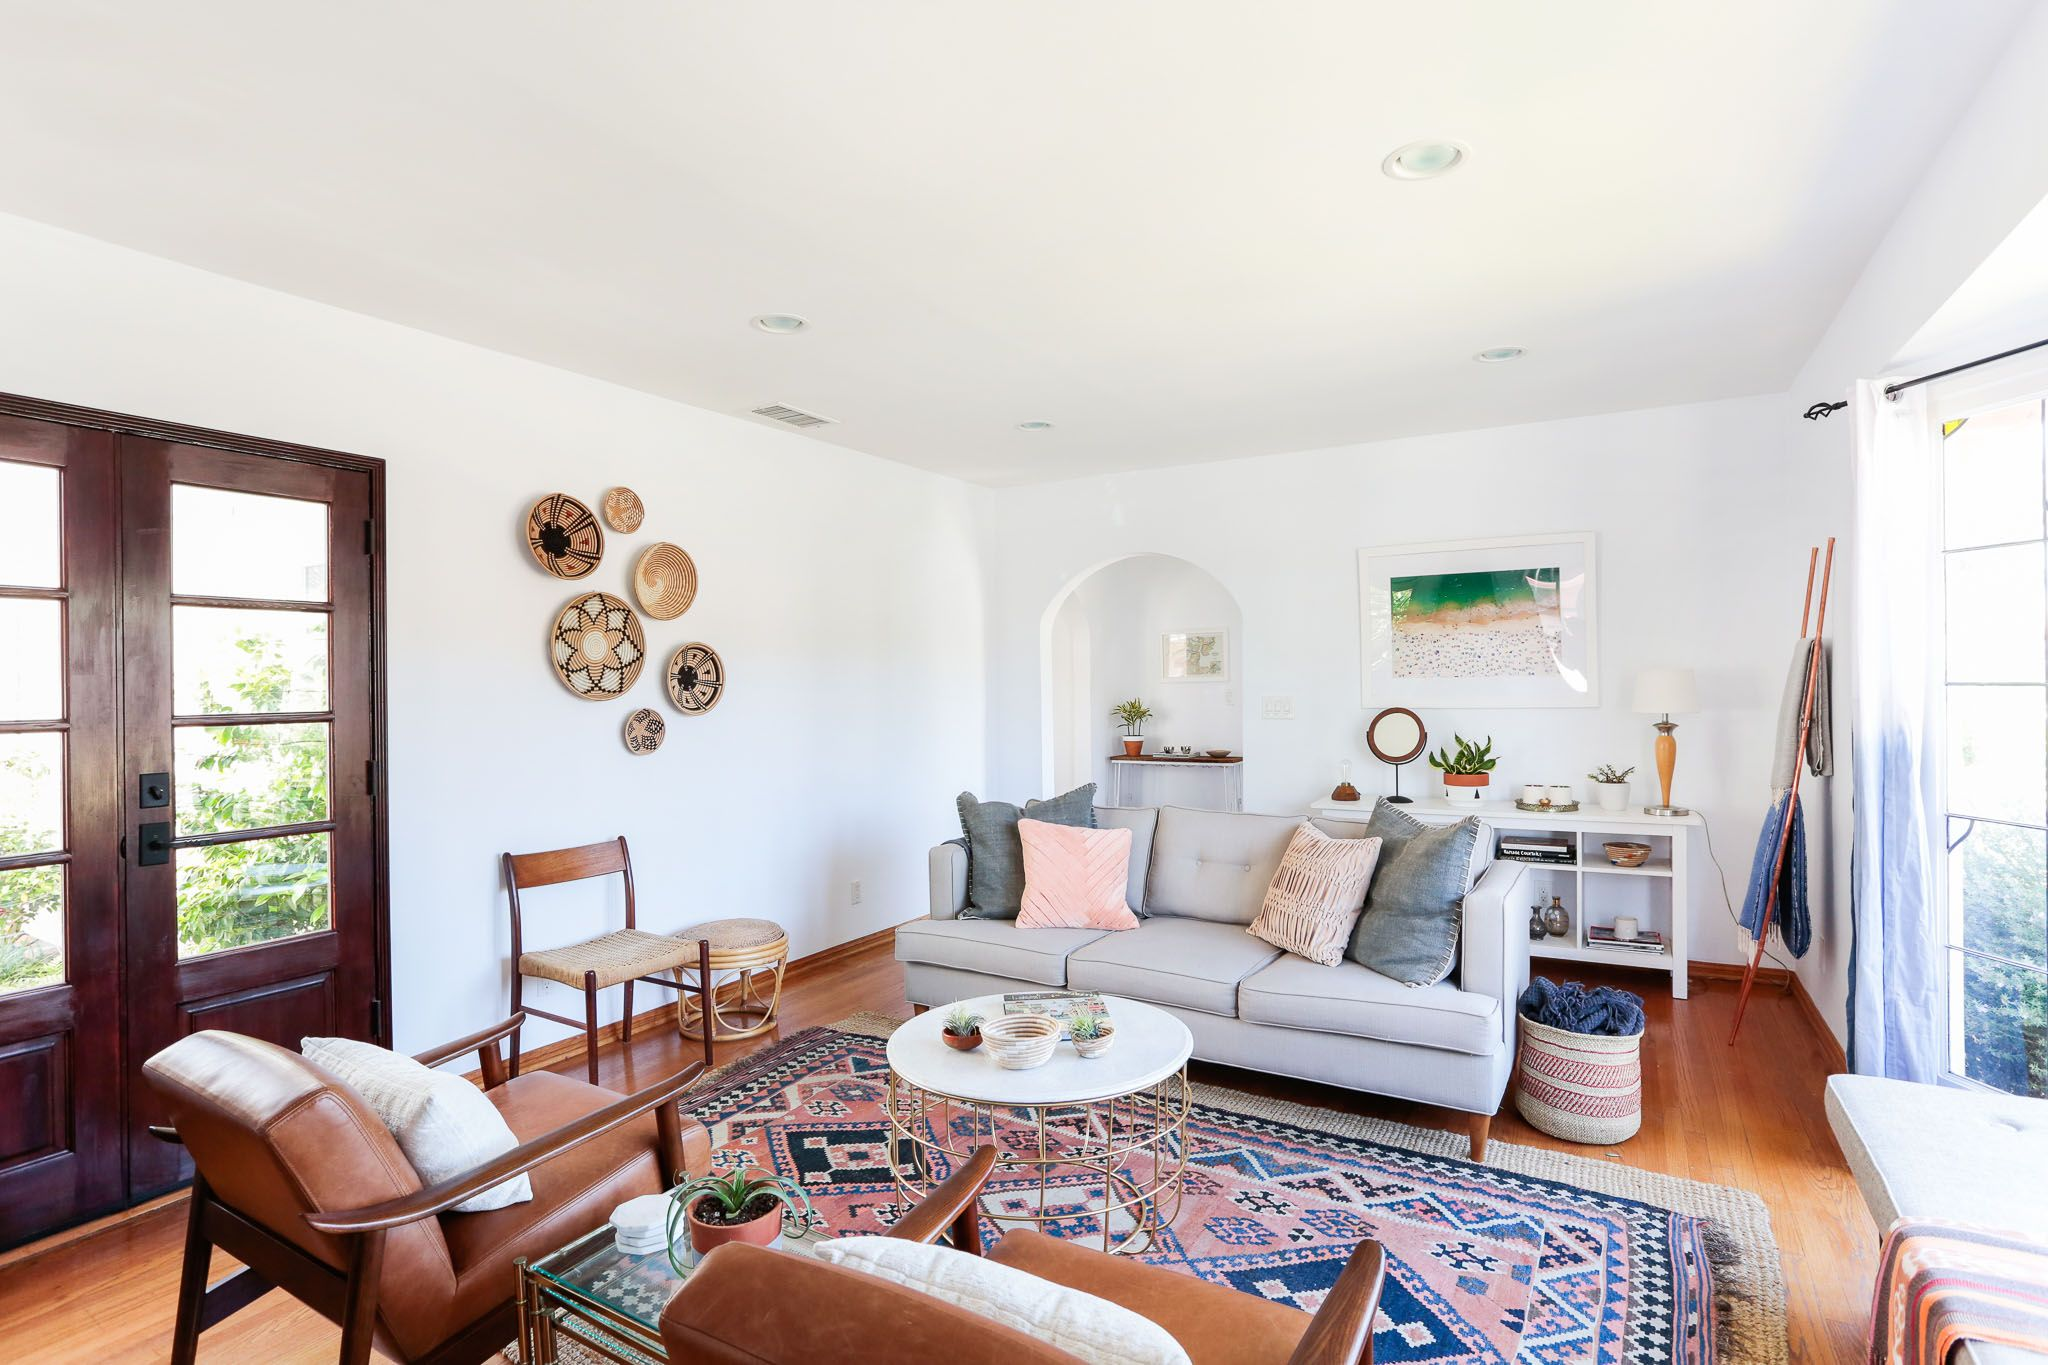 A California Home Full of Artisanal Treasures